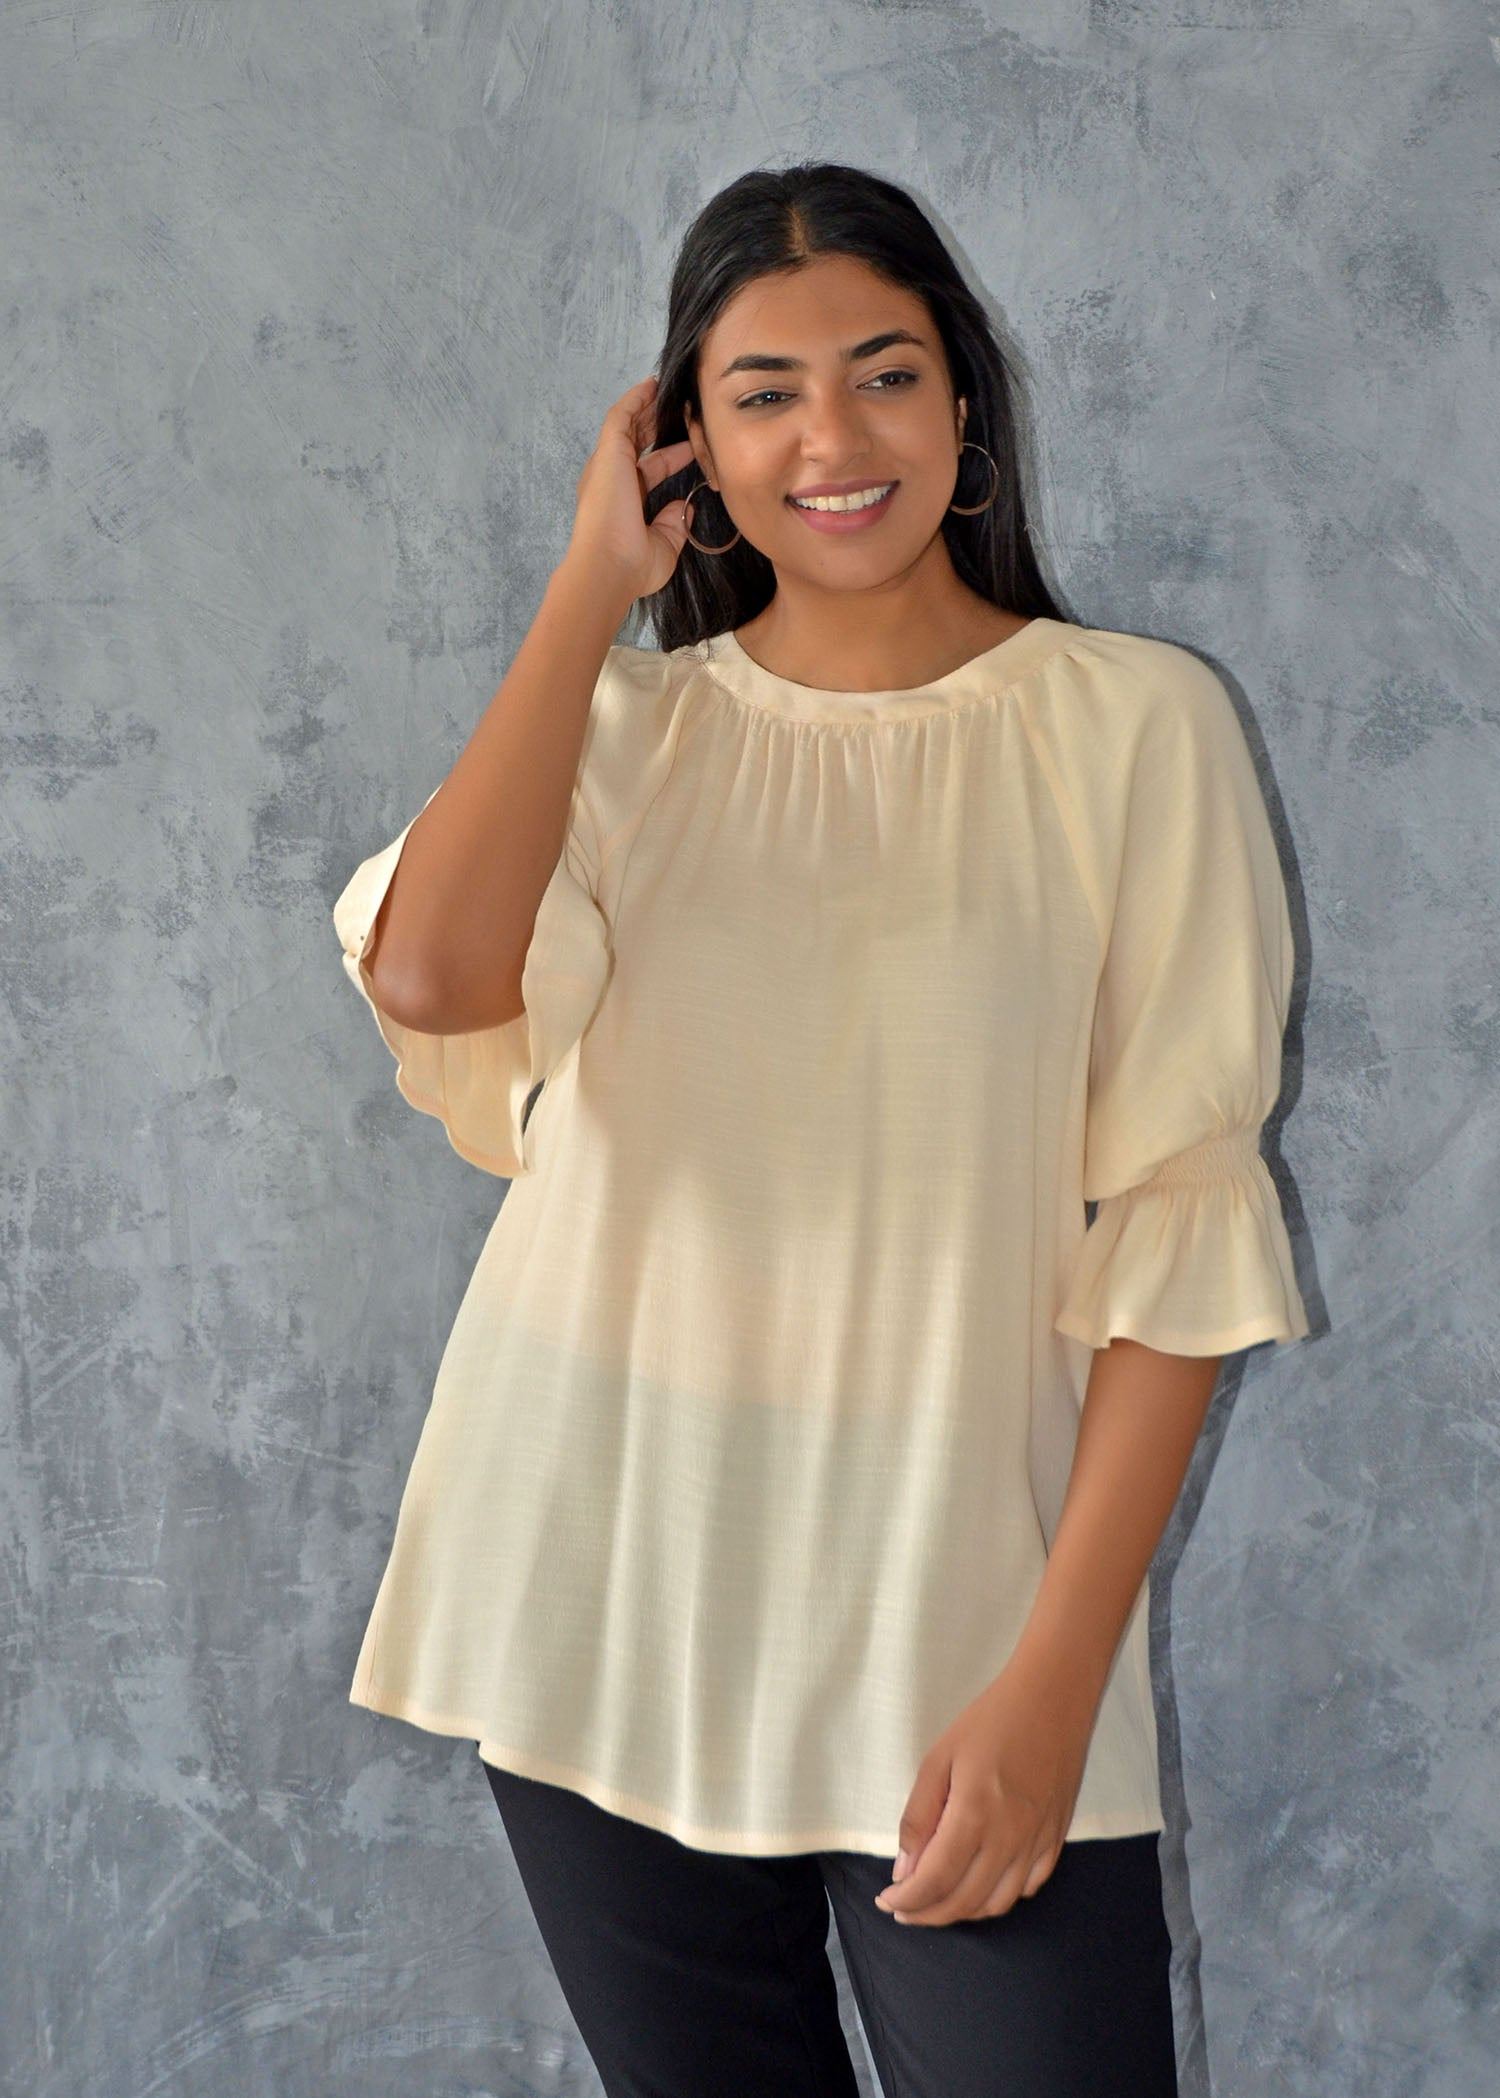 Raglan Sleeve Top With Stitches